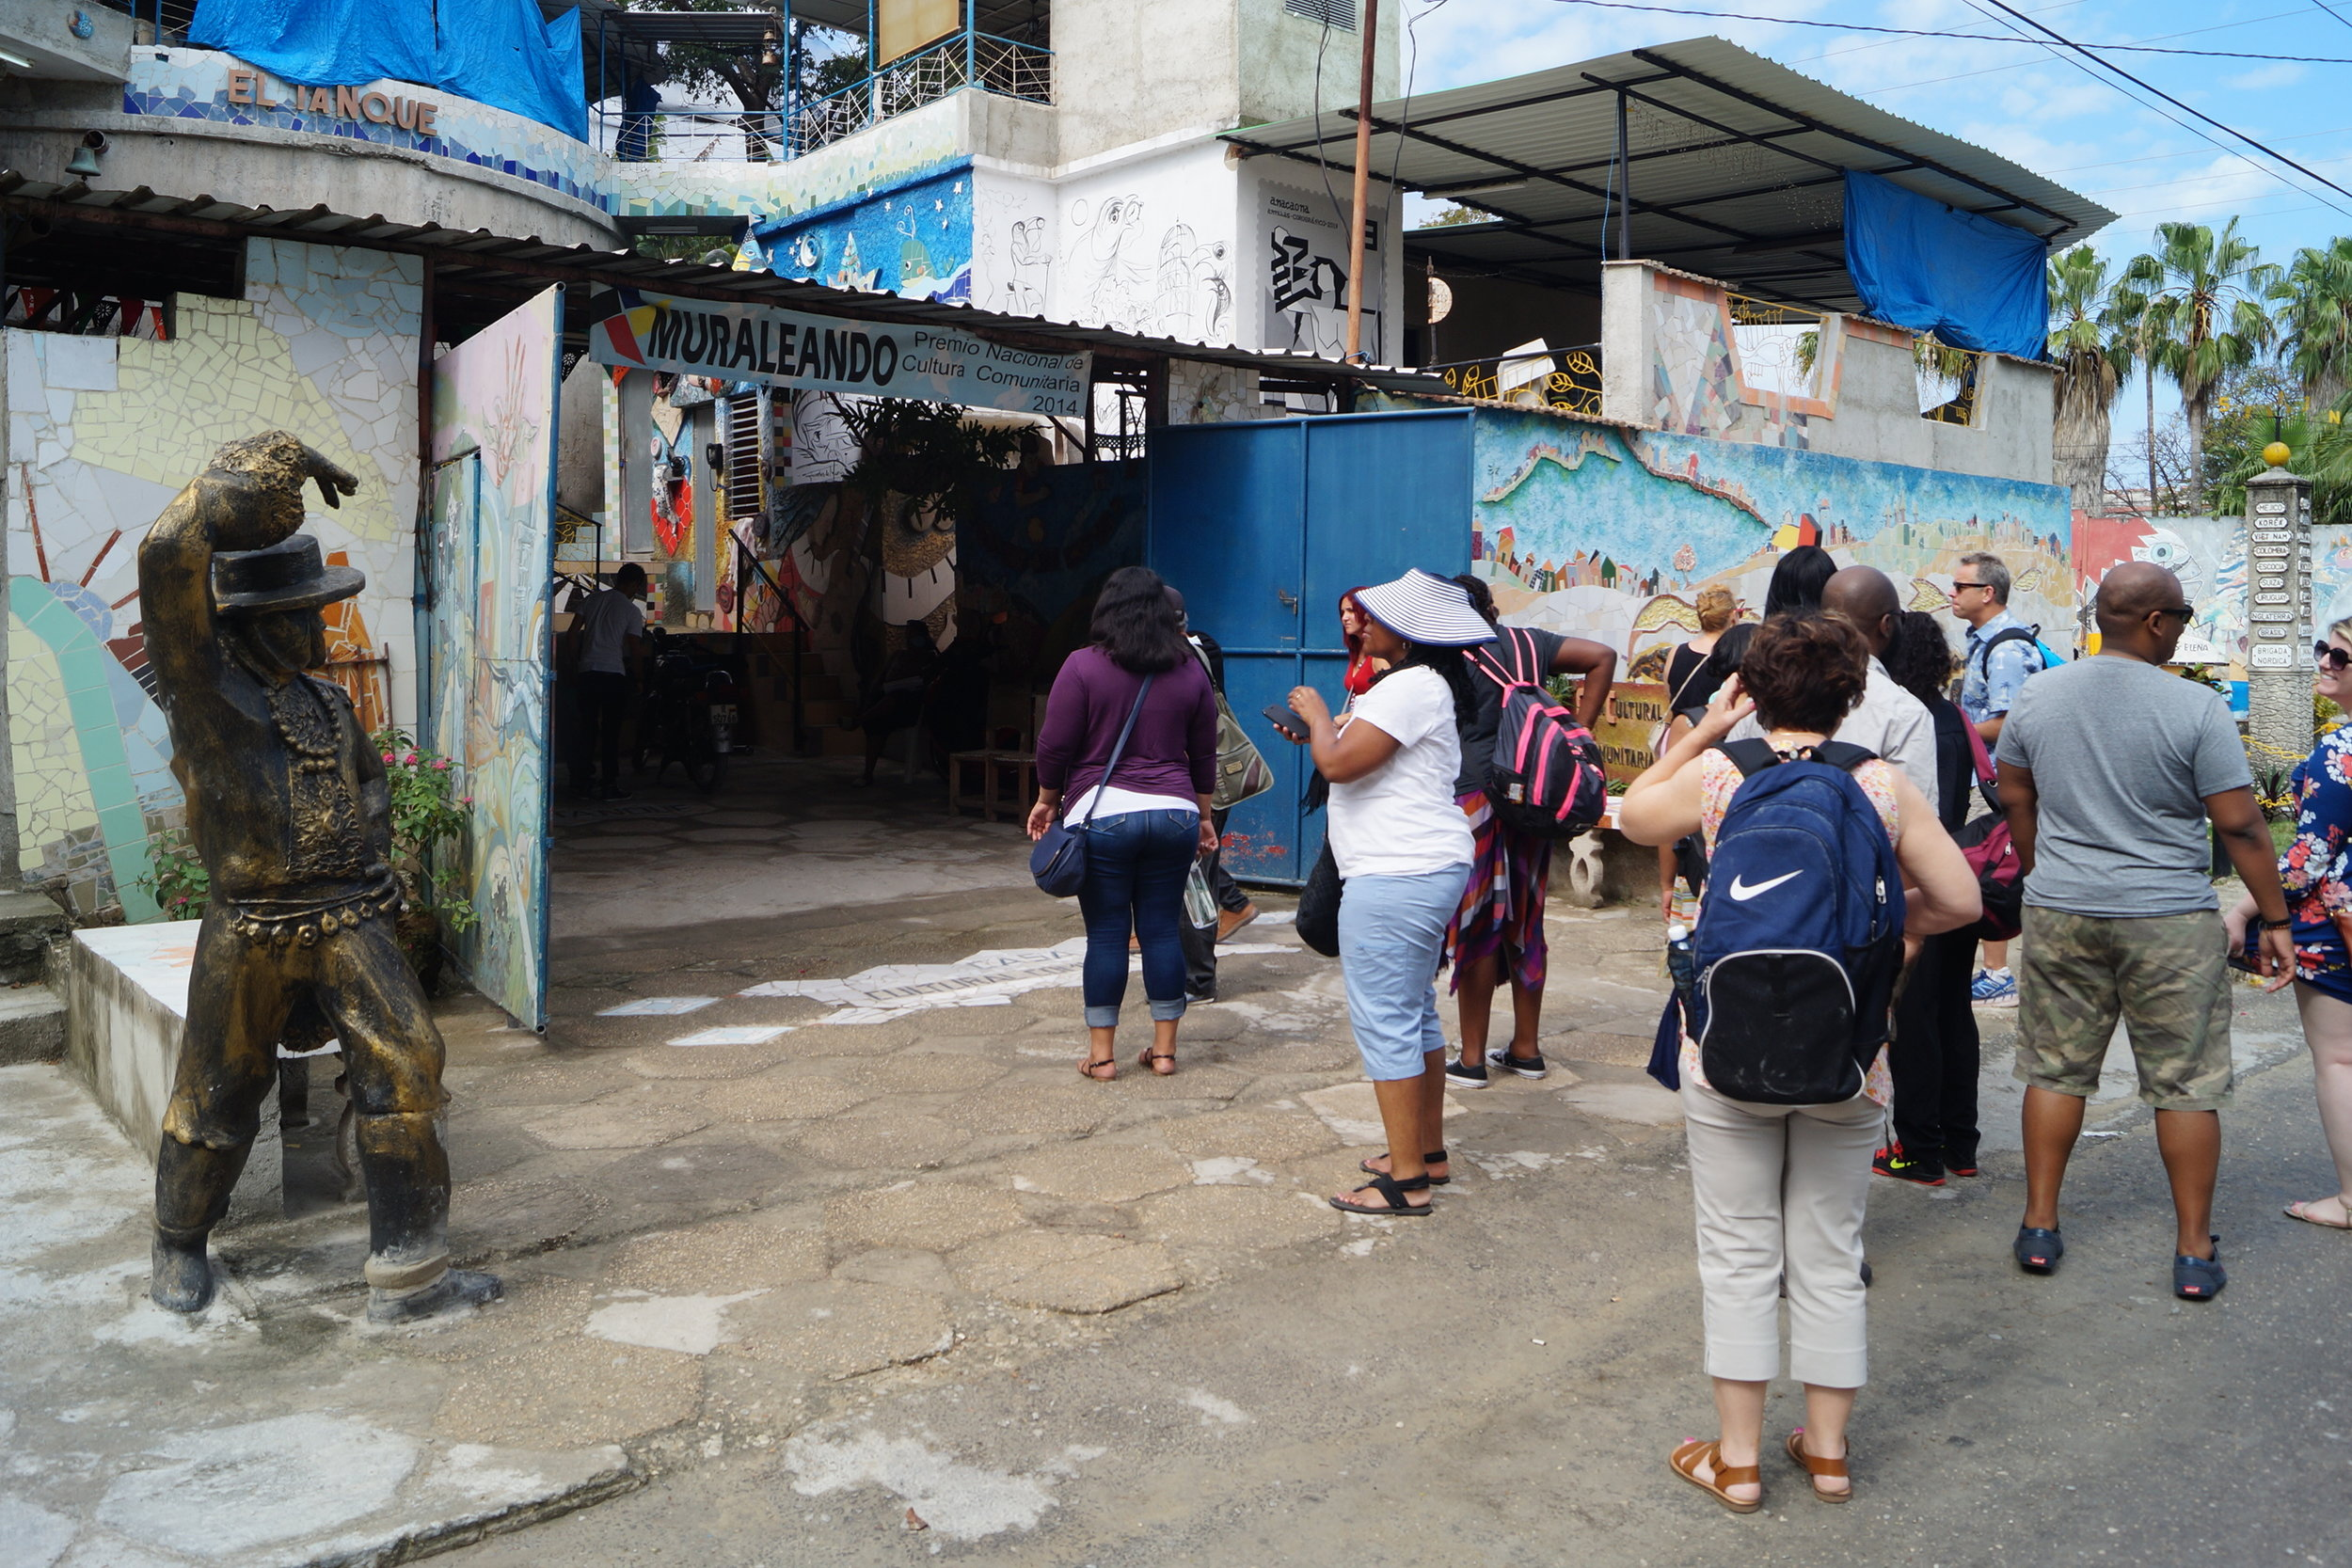 Muraleando: Community Art Project - Visit Muraleando, an community art center in Havana. Music, dance, sculpting, painting and other fine arts are all part of the project that inspire the lives of local residents.